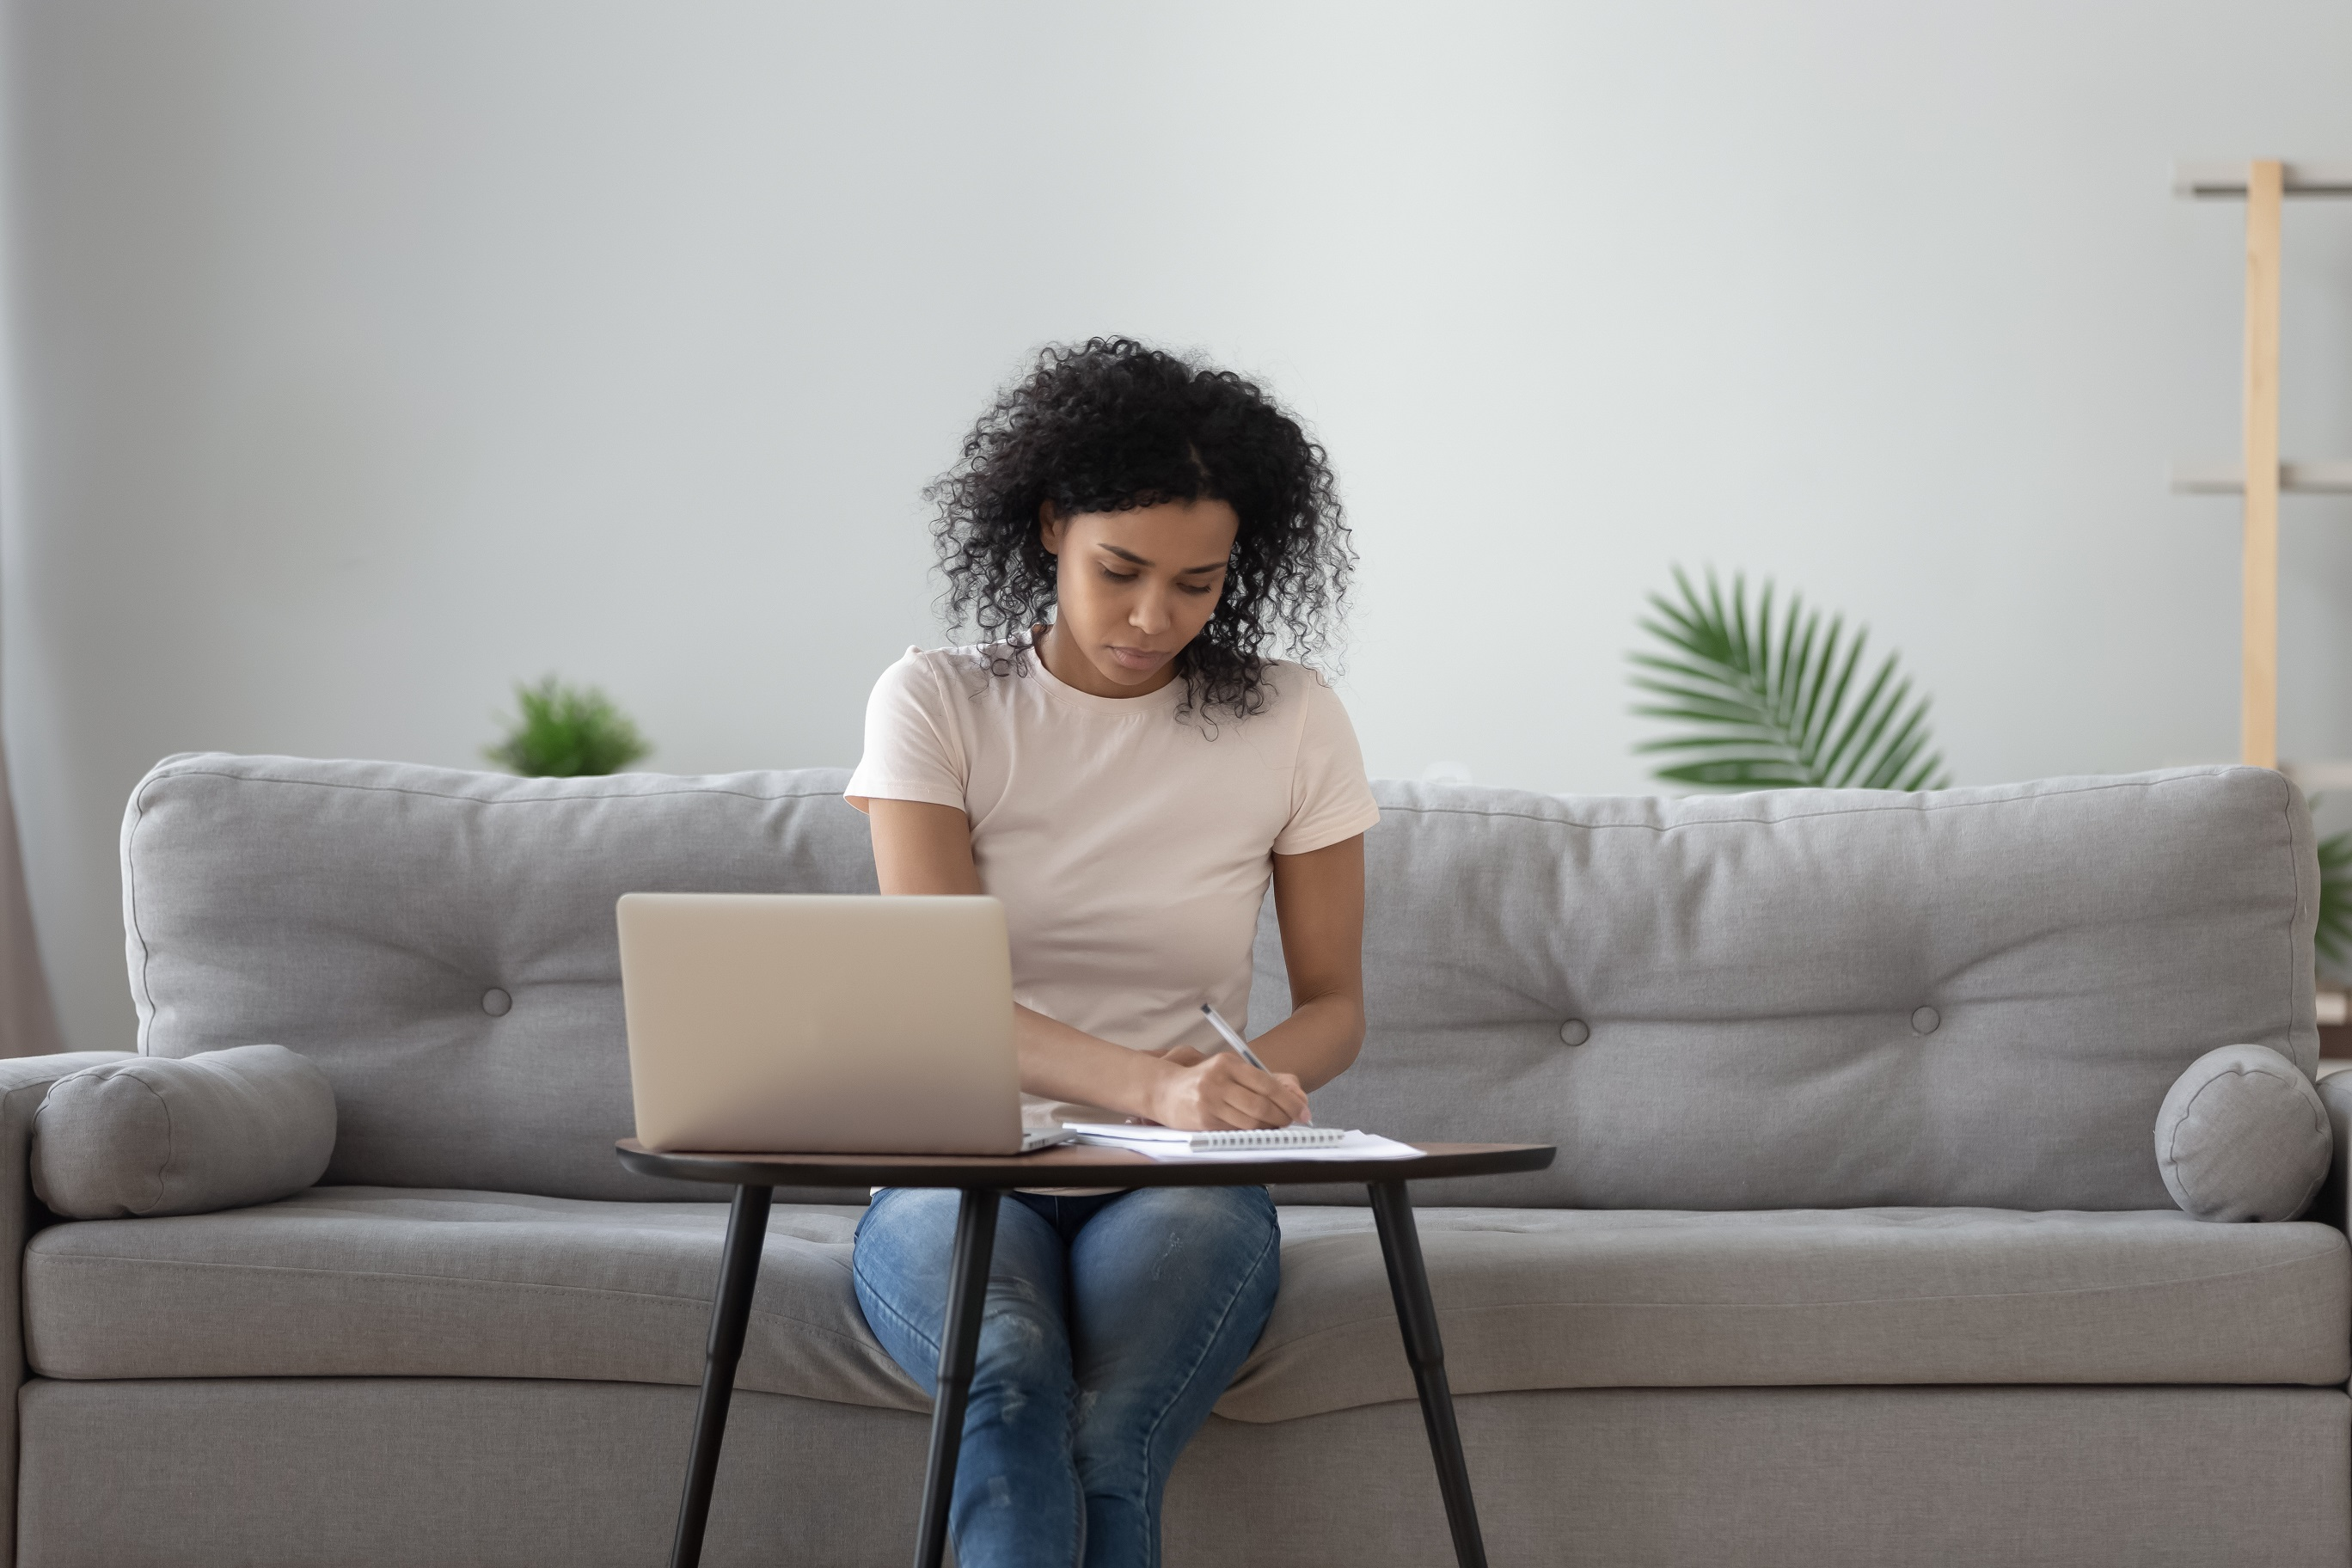 Telecommuting will likely continue long after the pandemic